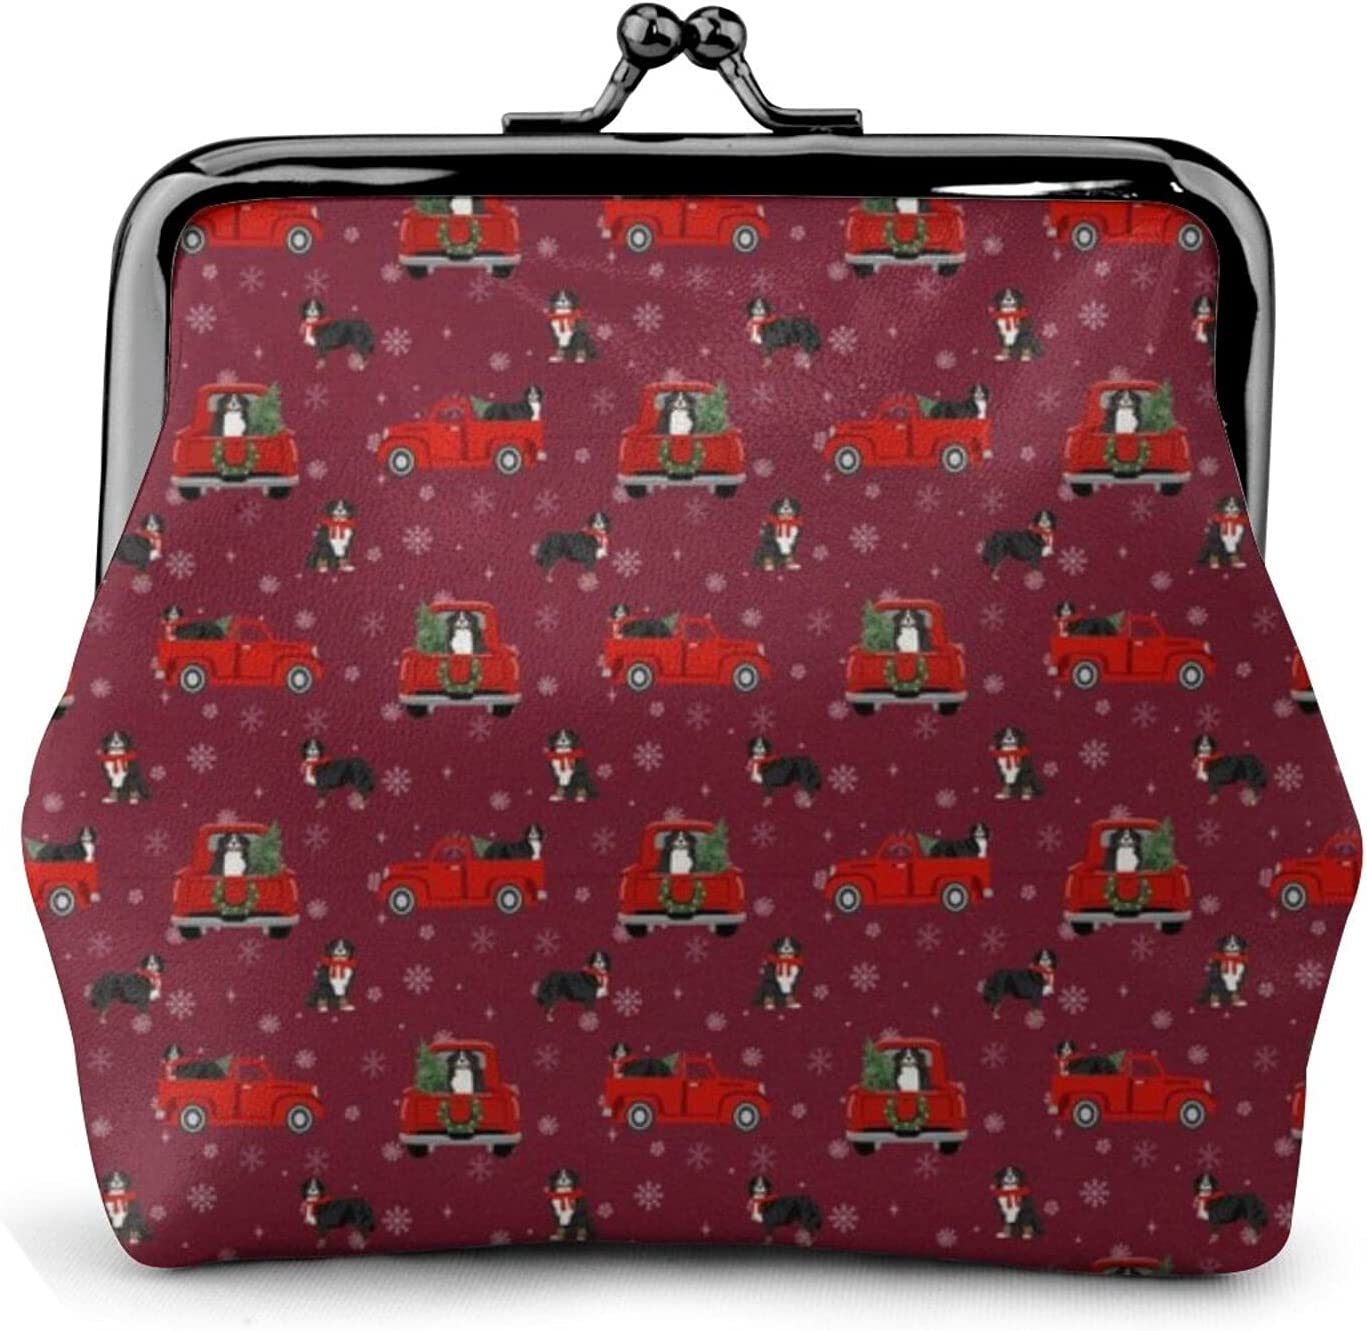 Bernese Mountain Dog 432 Coin Purse Retro Money Pouch with Kiss-lock Buckle Small Wallet for Women and Girls